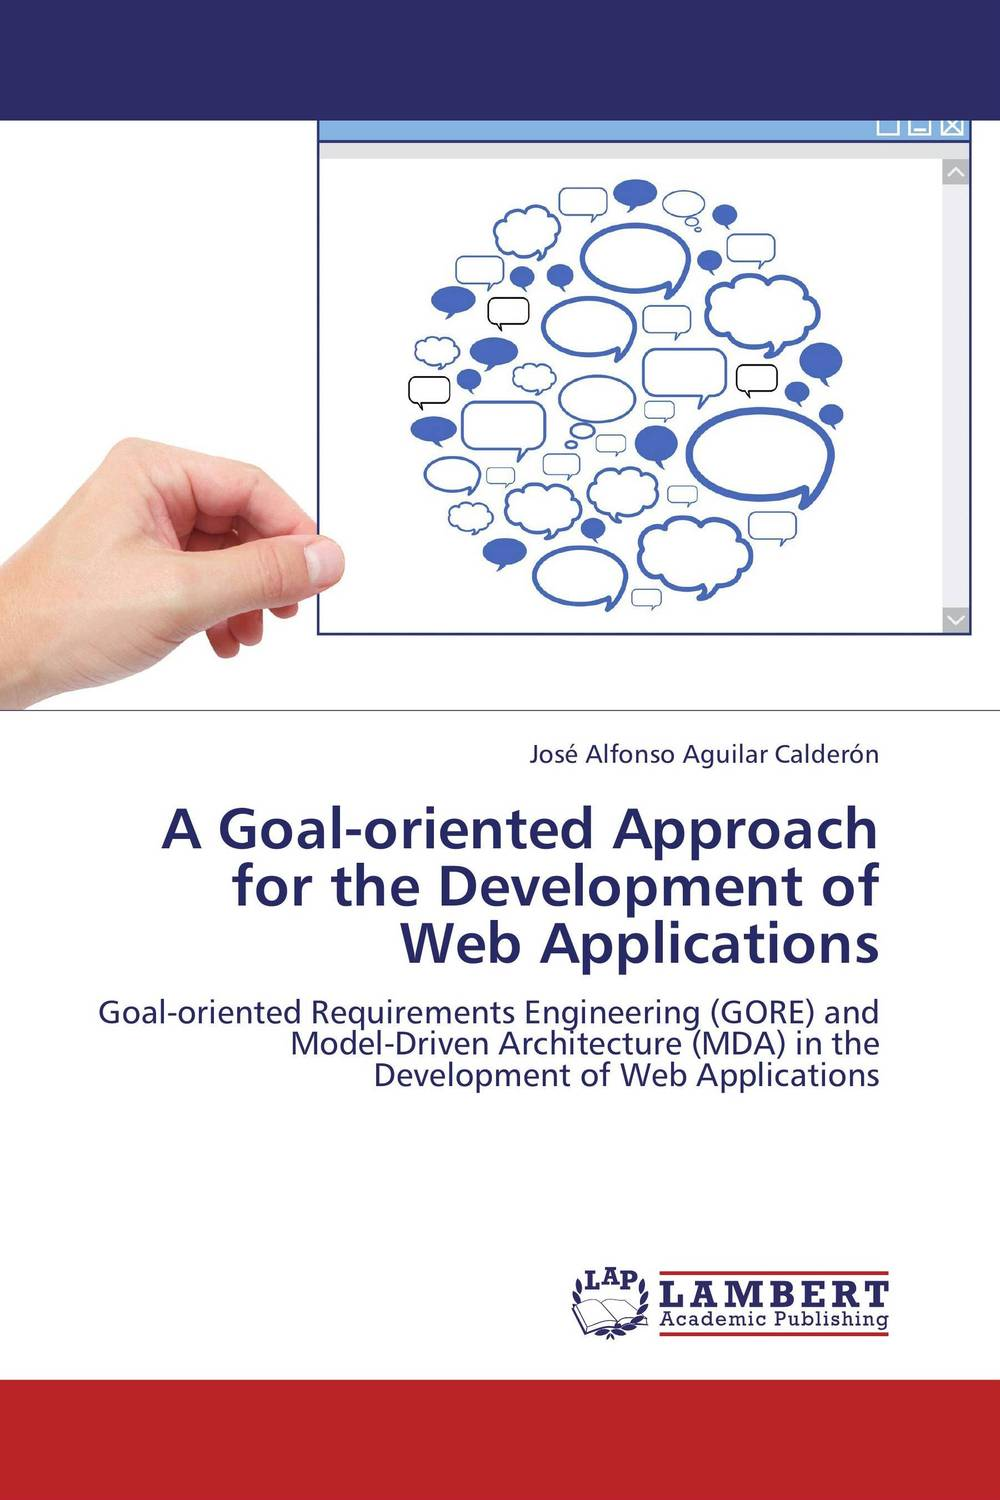 A Goal-oriented Approach for the Development of Web Applications swiftack a new agile development approach